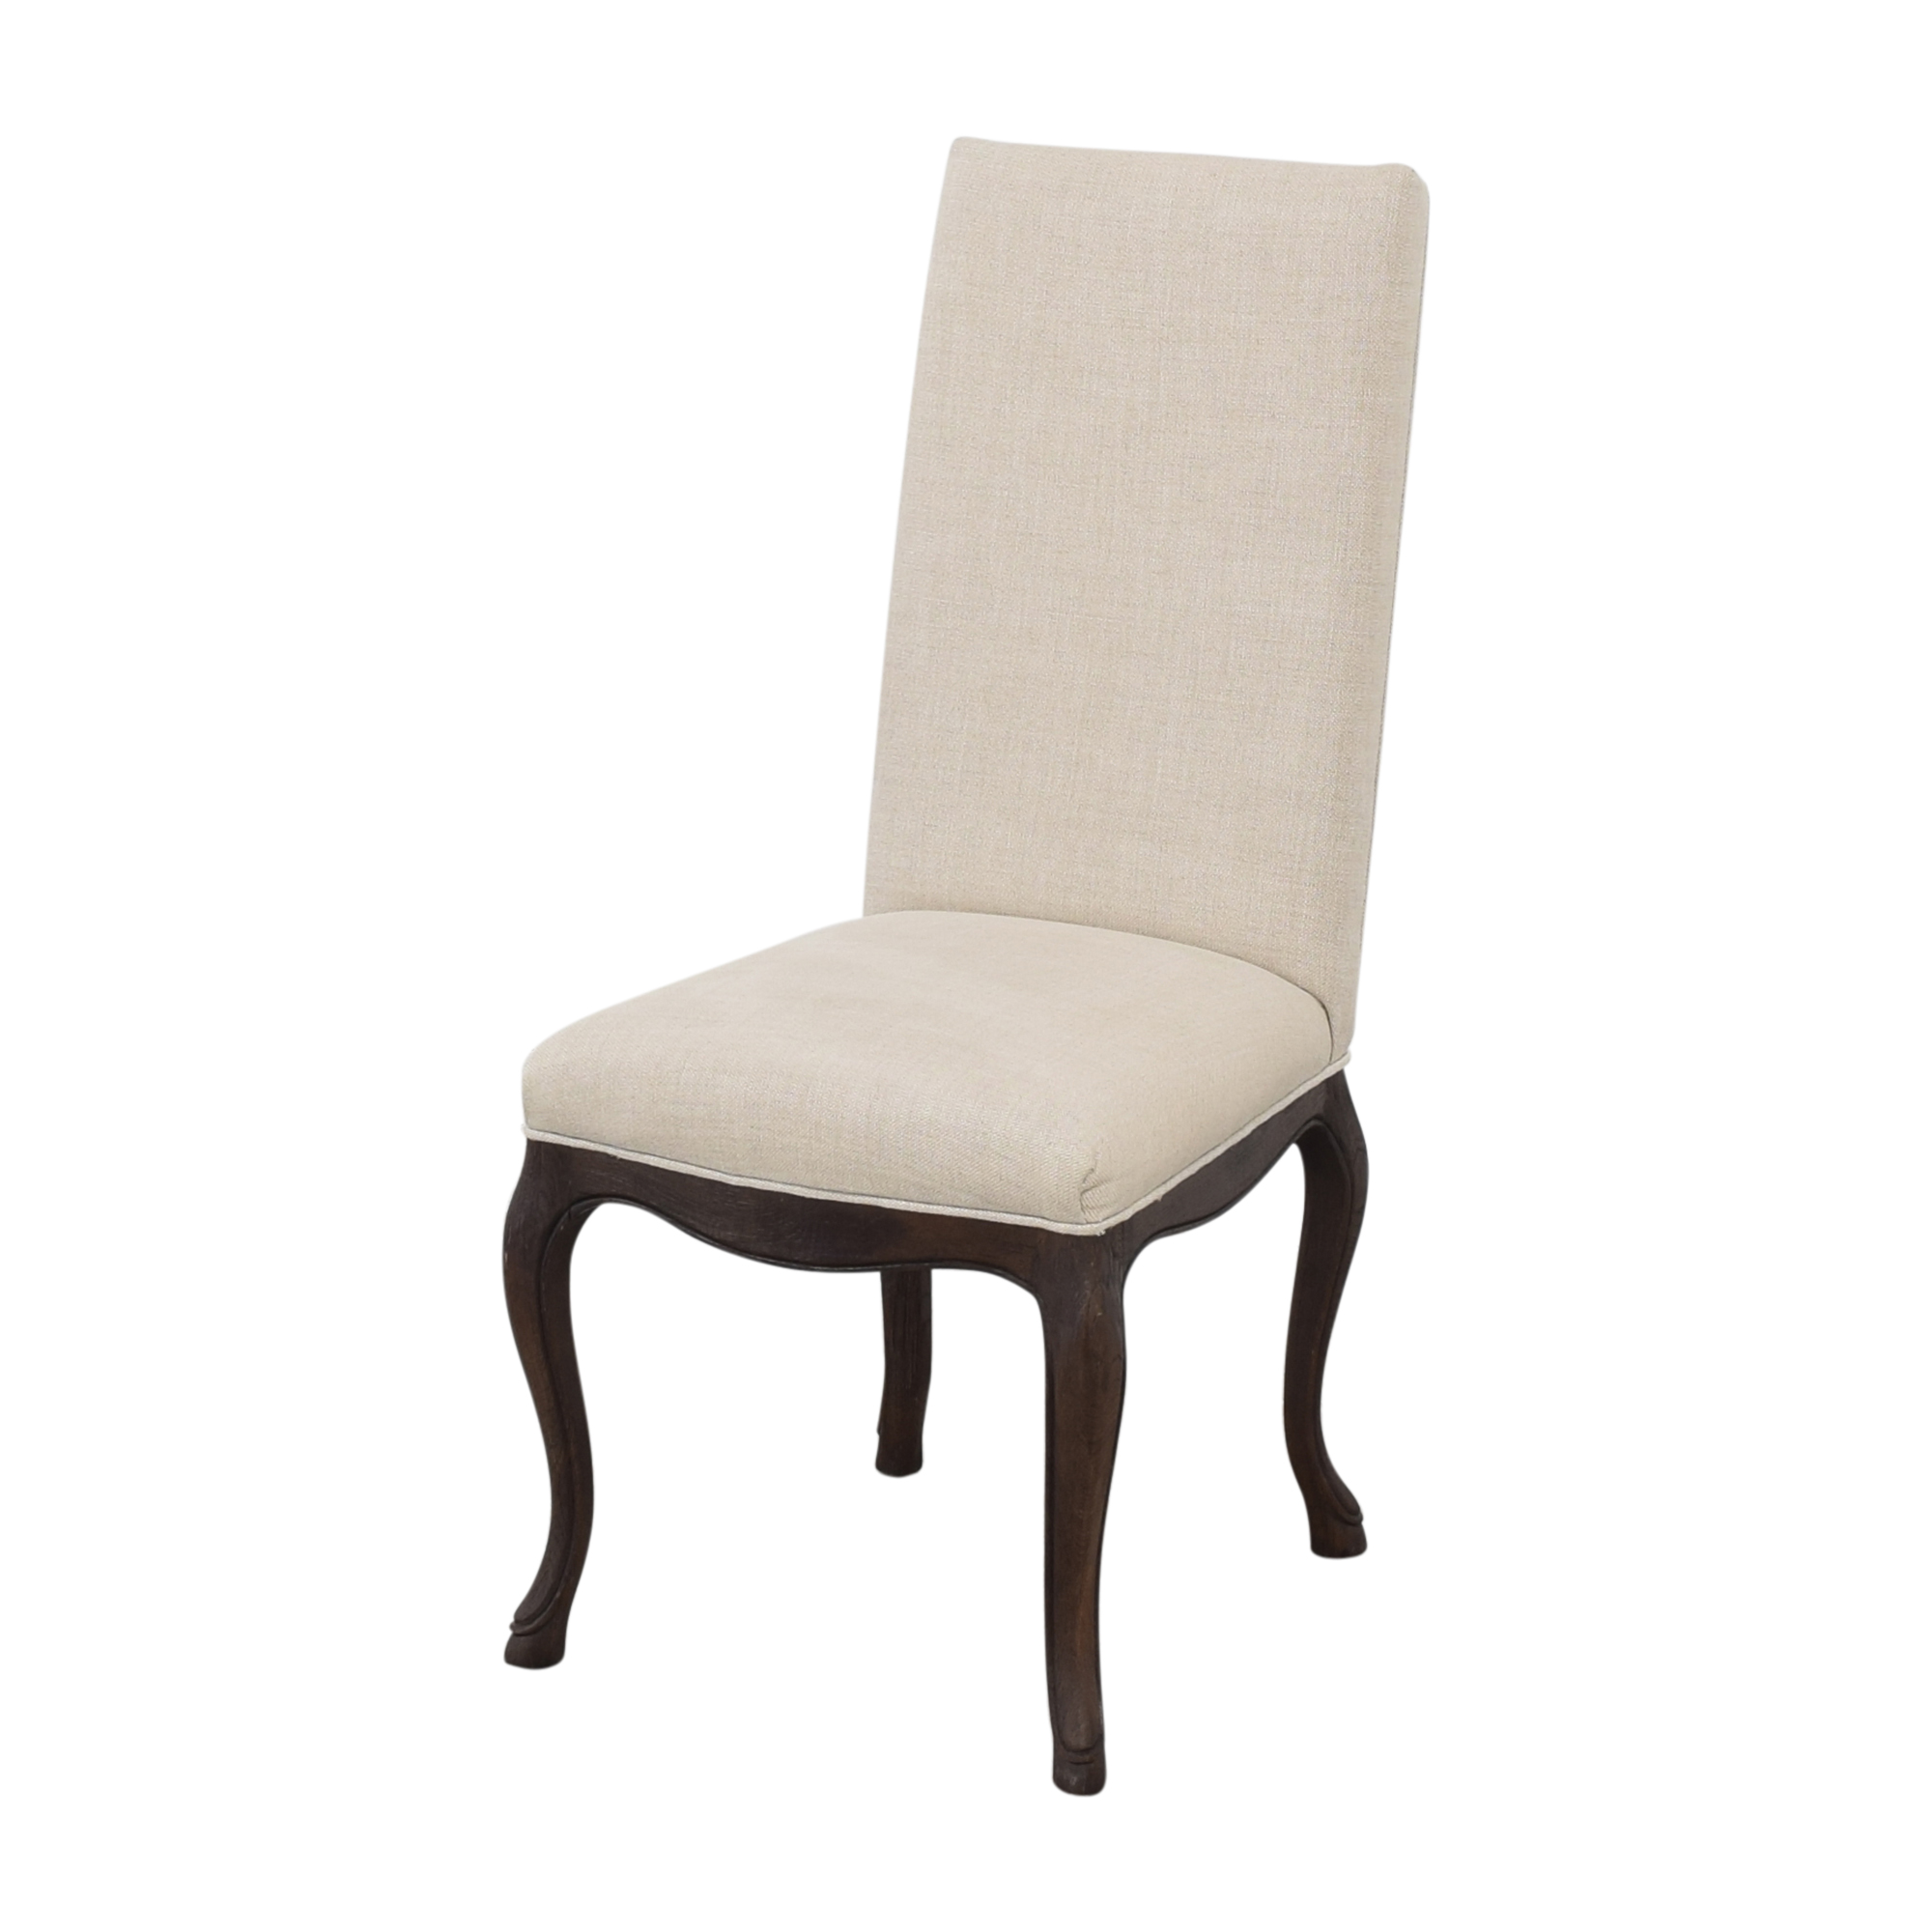 Restoration Hardware Restoration Hardware Louis XV Cabriole Chairs second hand